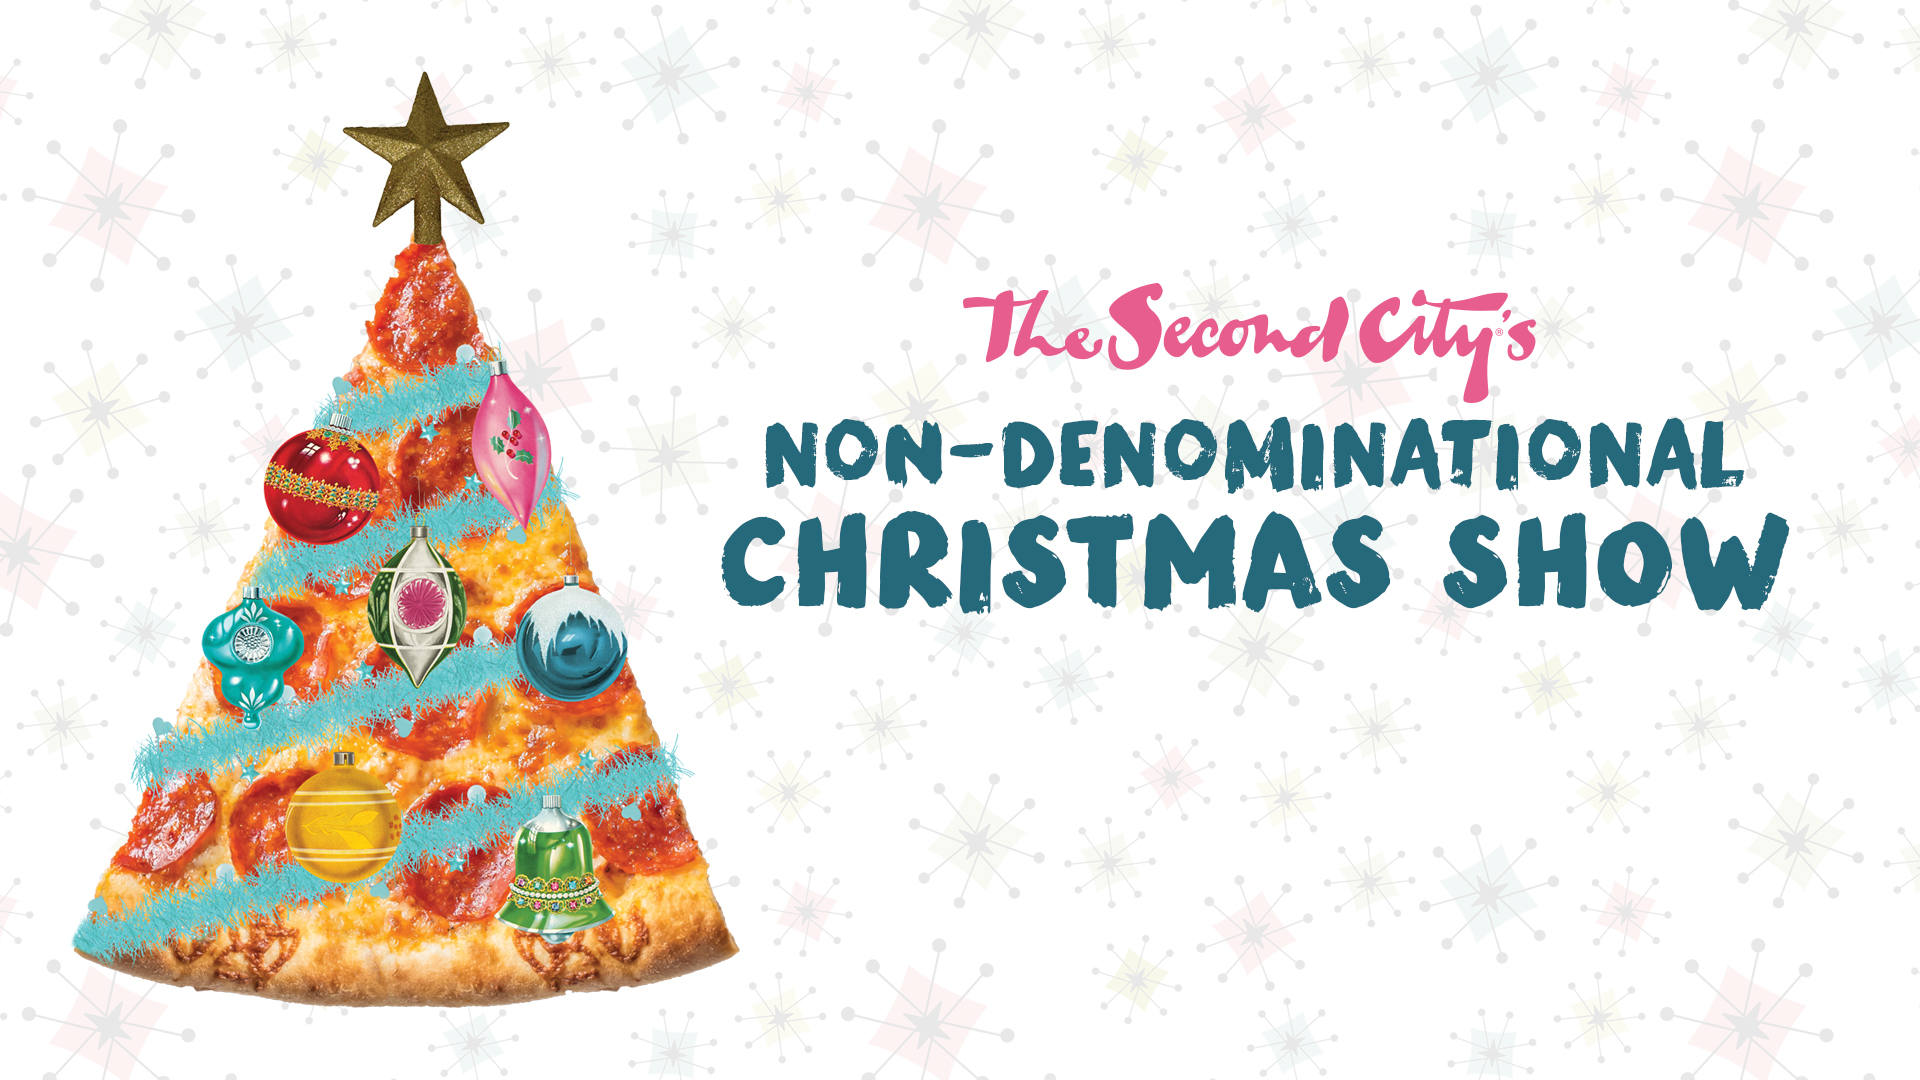 The Second City's Non-Denominational Christmas Show